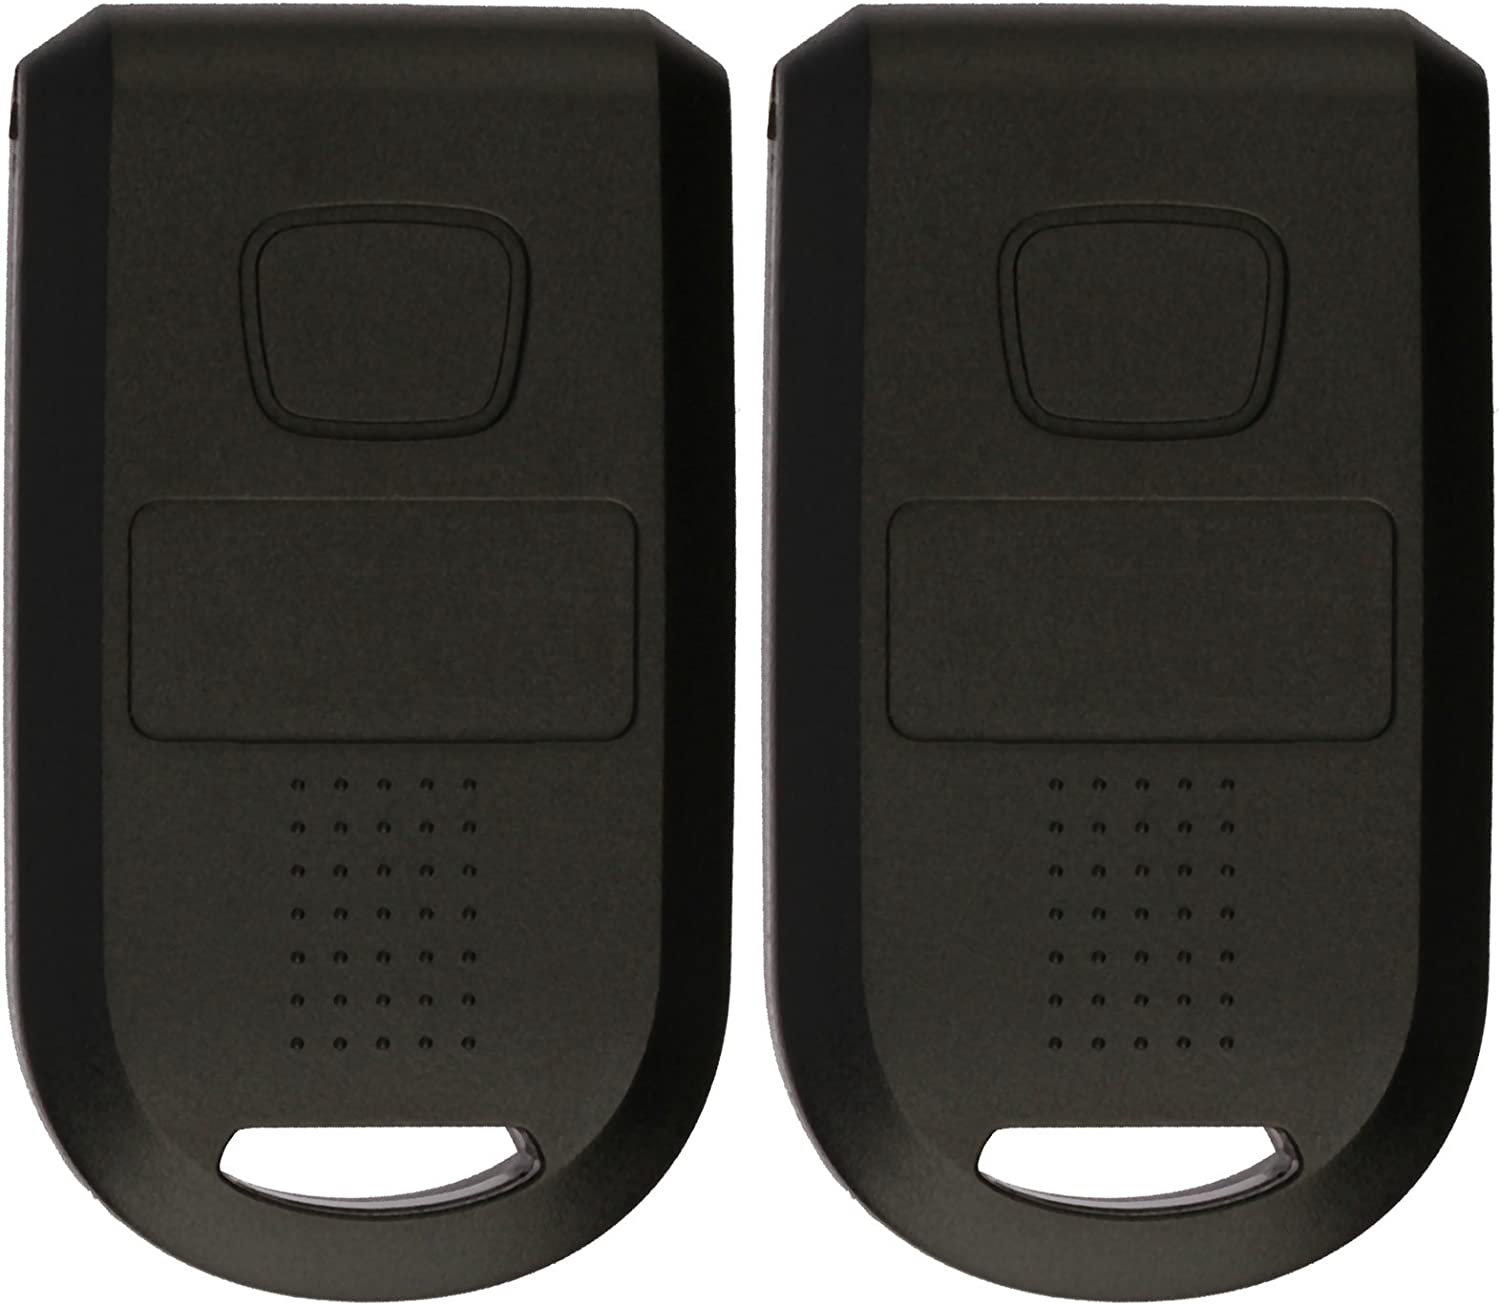 KeylessOption Keyless Entry Remote Car Key Fob for OUCG8D-399H-A Pack of 2